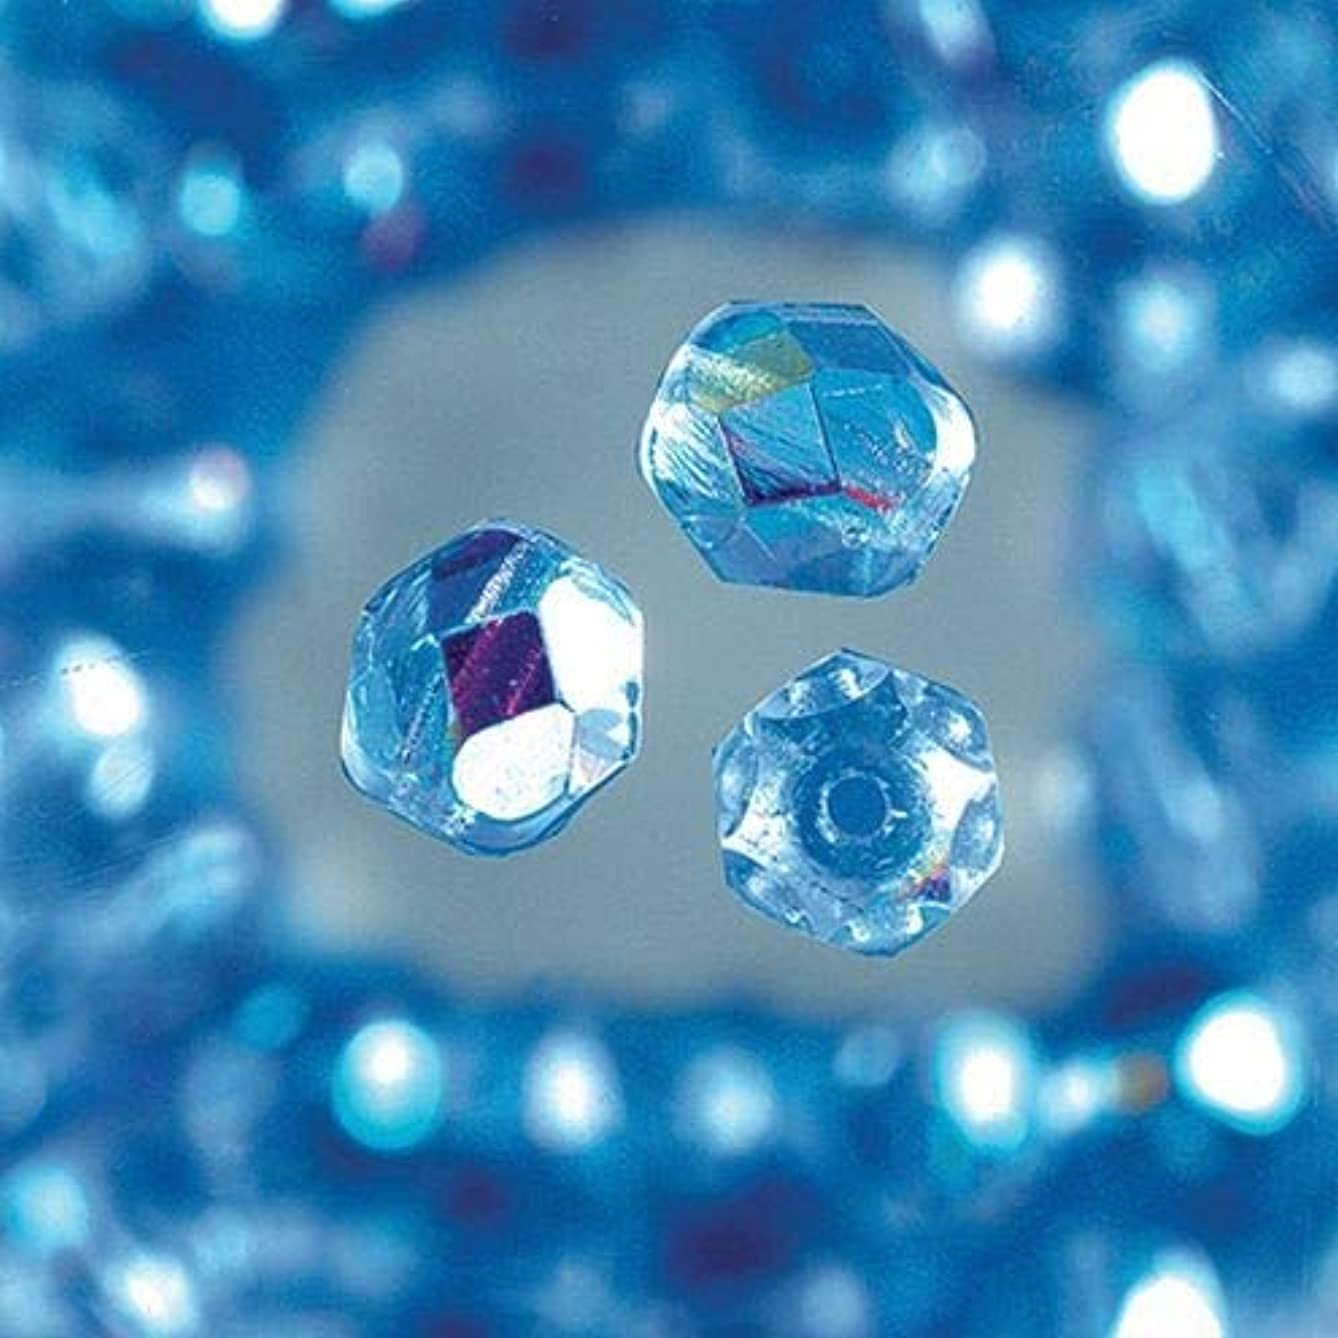 Efco Glass Faceted Beads Round, Iridescent 4 mm 100 pcs. Middle Blue, 3 x 3 x 2 cm